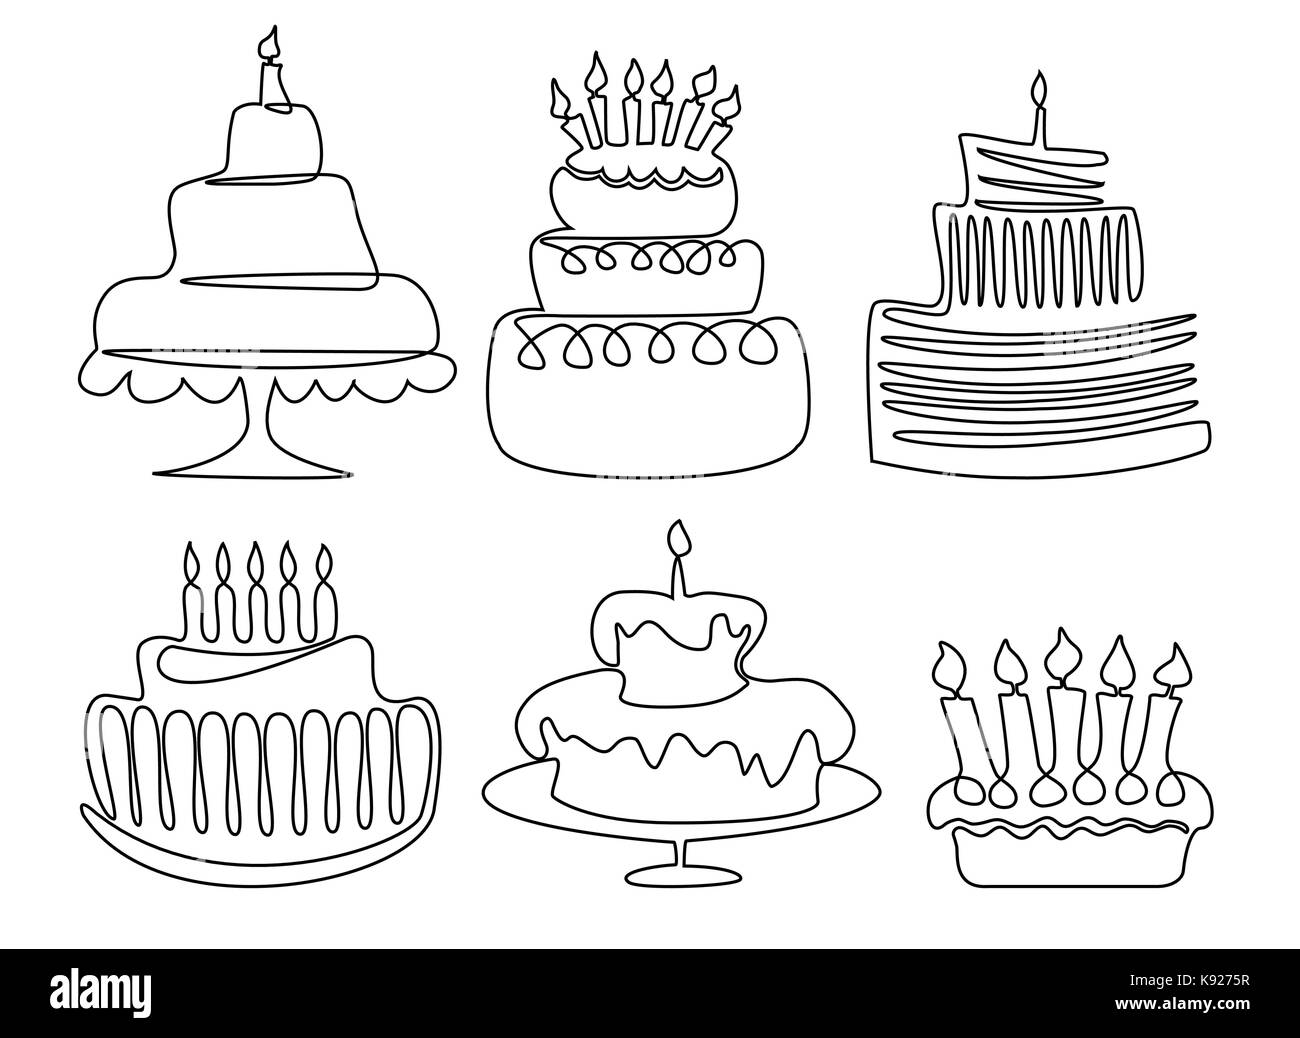 Birthday Cake One Line Drawing Stock Vector Art Illustration